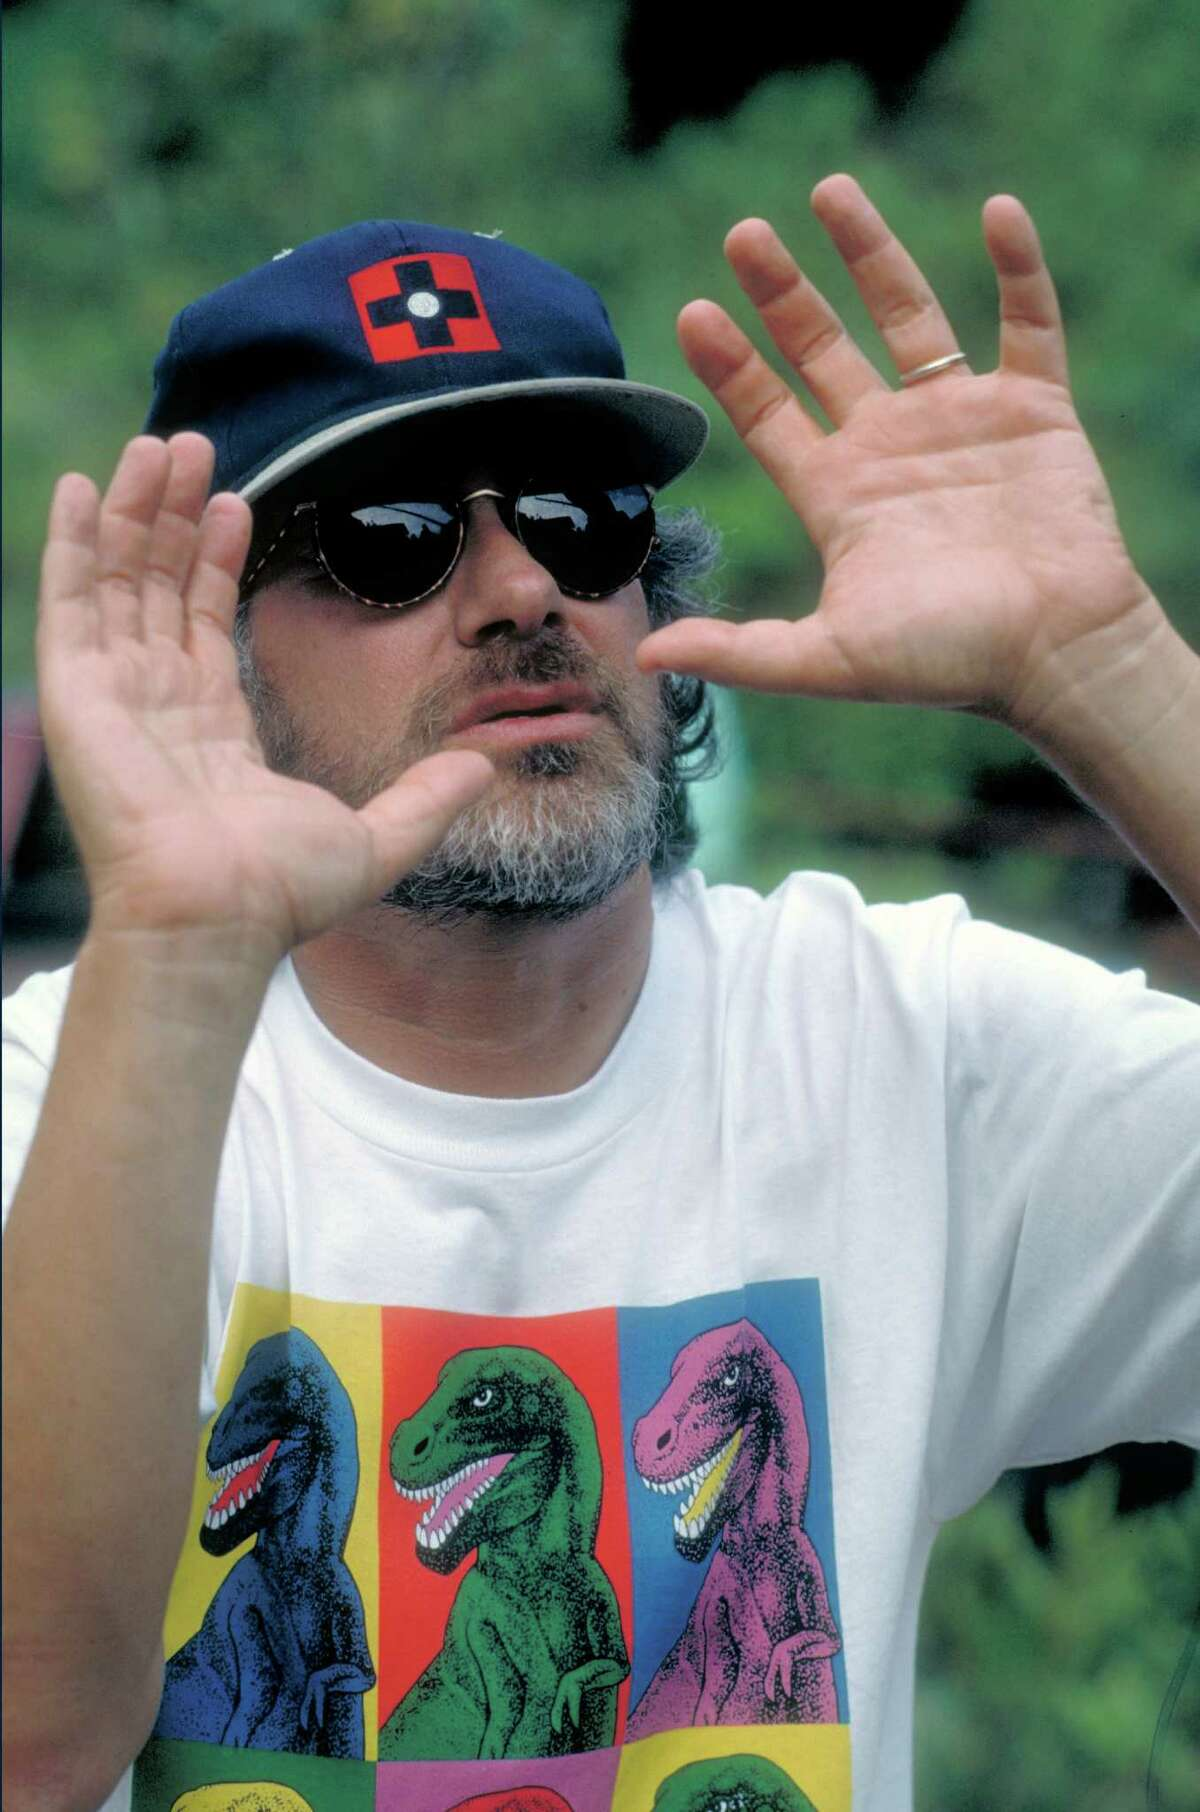 Director Steven Spielberg turned the book into a film. Here, he wears a Warhol-inspired dinosaur t-shirt while directing the movie.